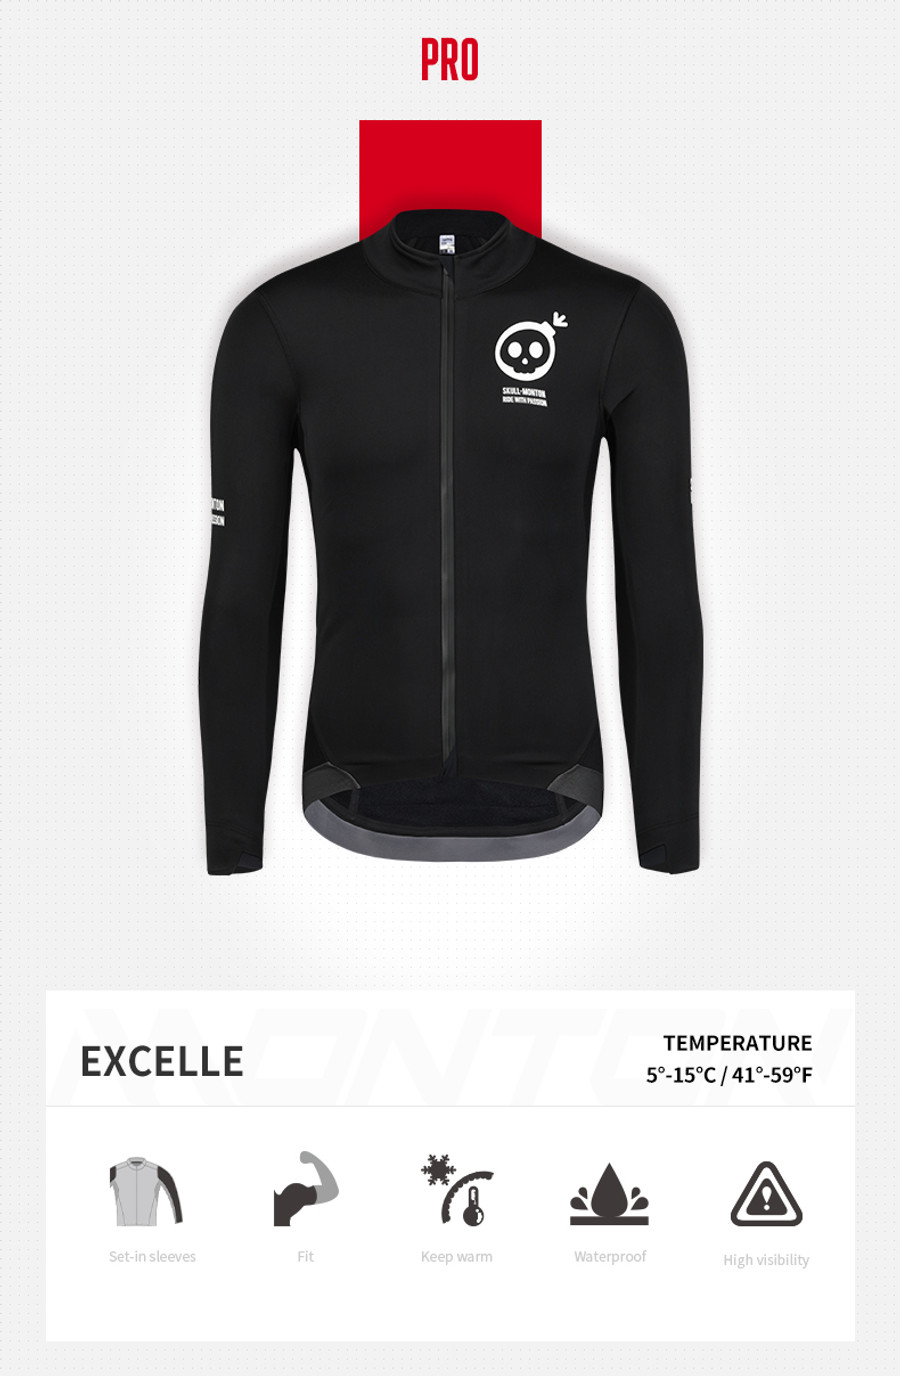 Men's PRO Excelle Thermal Jacket